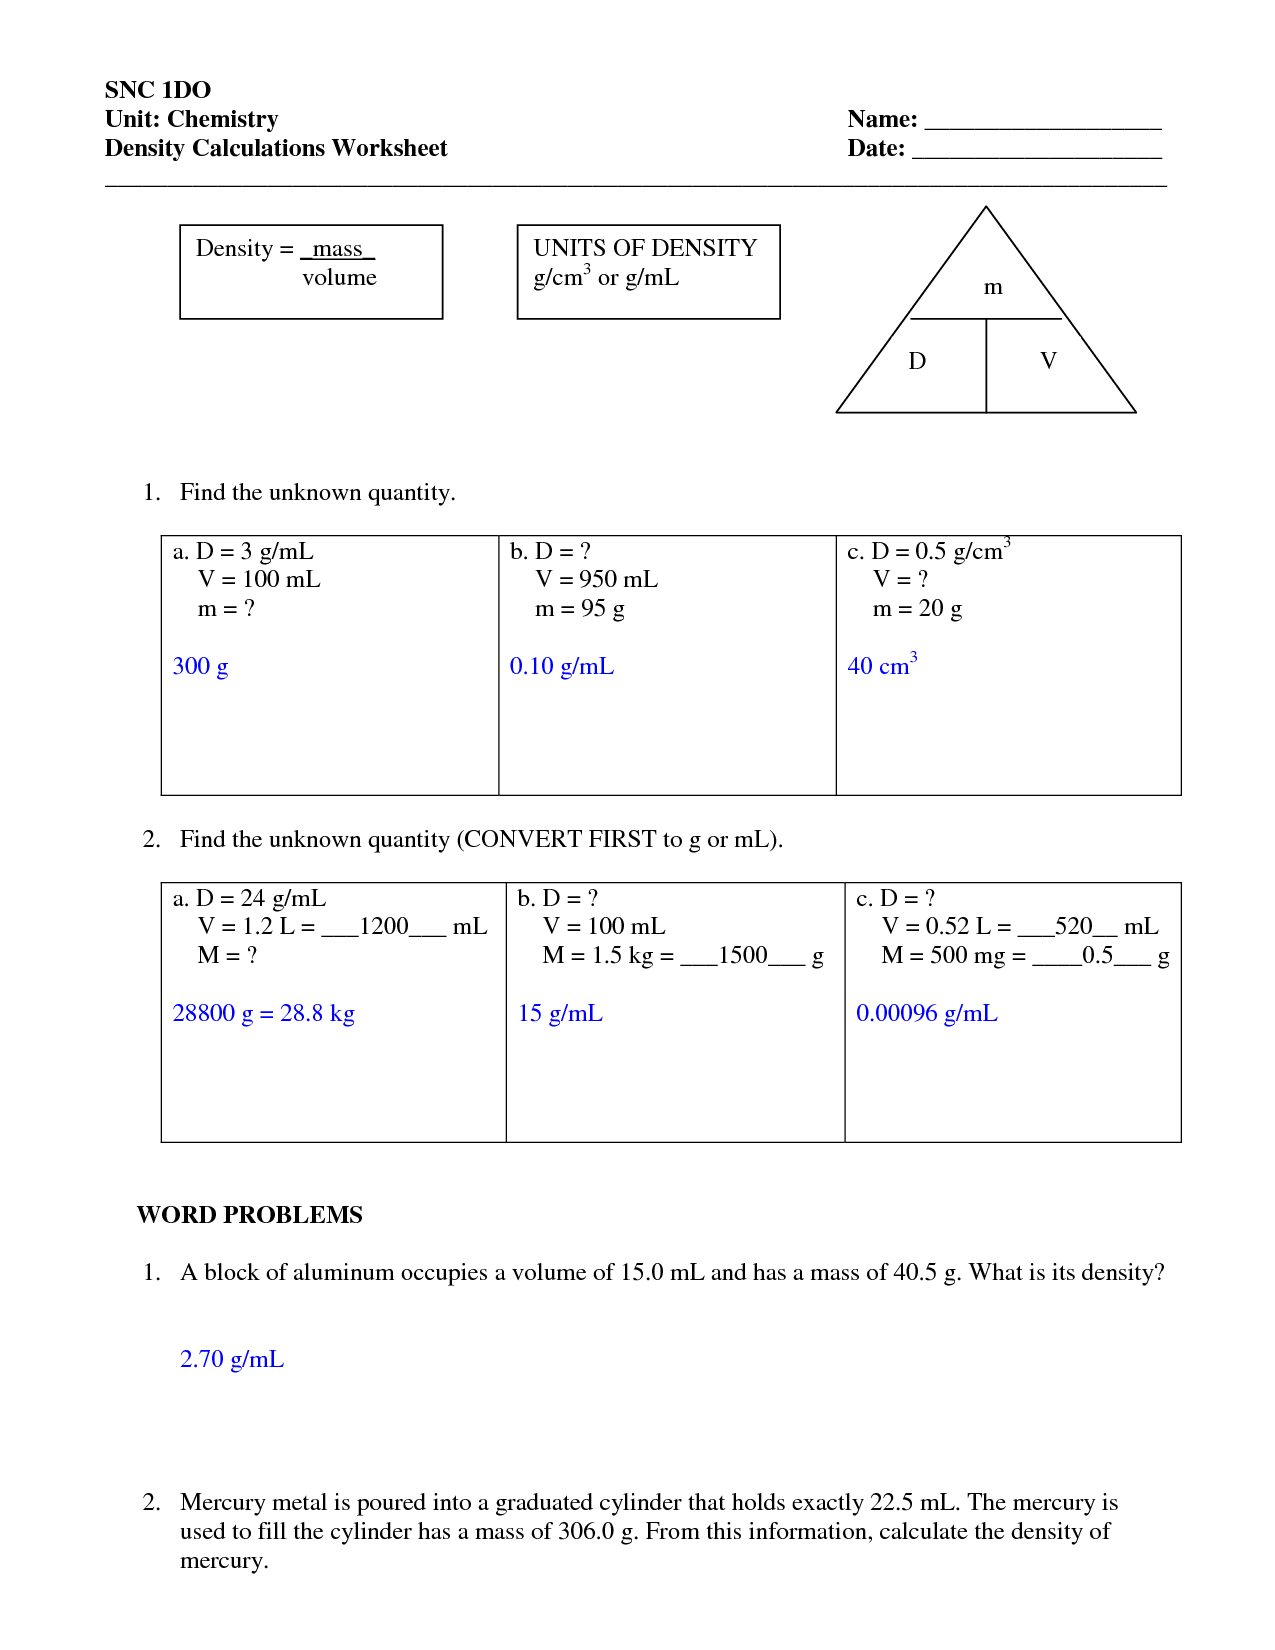 Worksheets Density Calculations Worksheet Answers Chicochino Worksheets and Printables